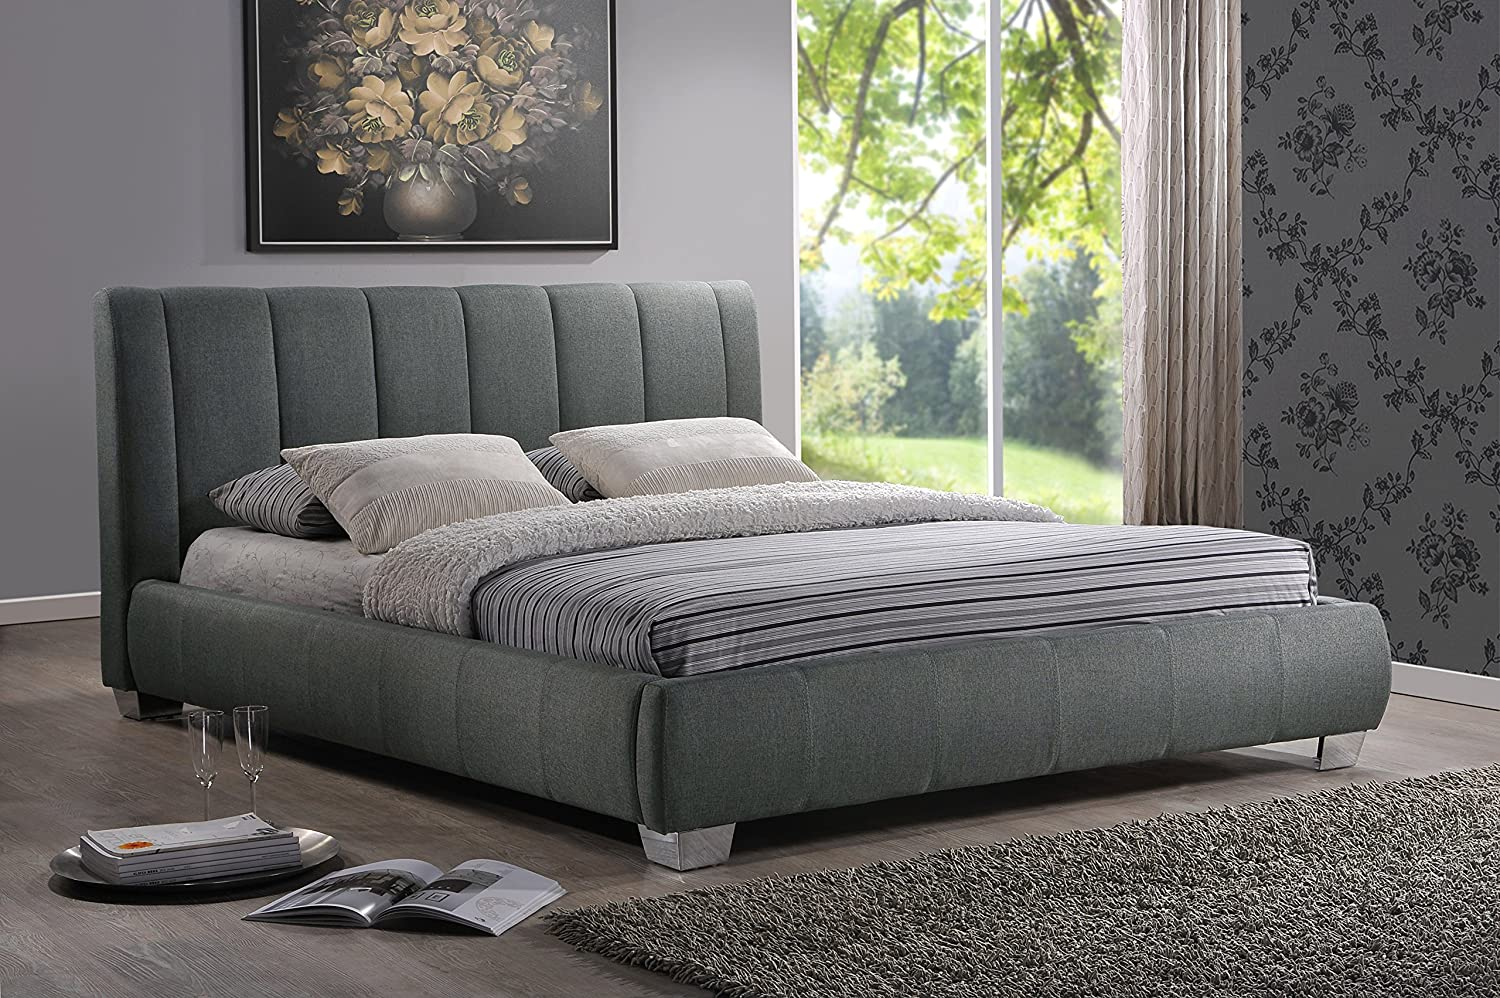 amazoncom baxton studio marzenia fabric upholstered platform bed greyqueen kitchen  dining. amazoncom baxton studio marzenia fabric upholstered platform bed